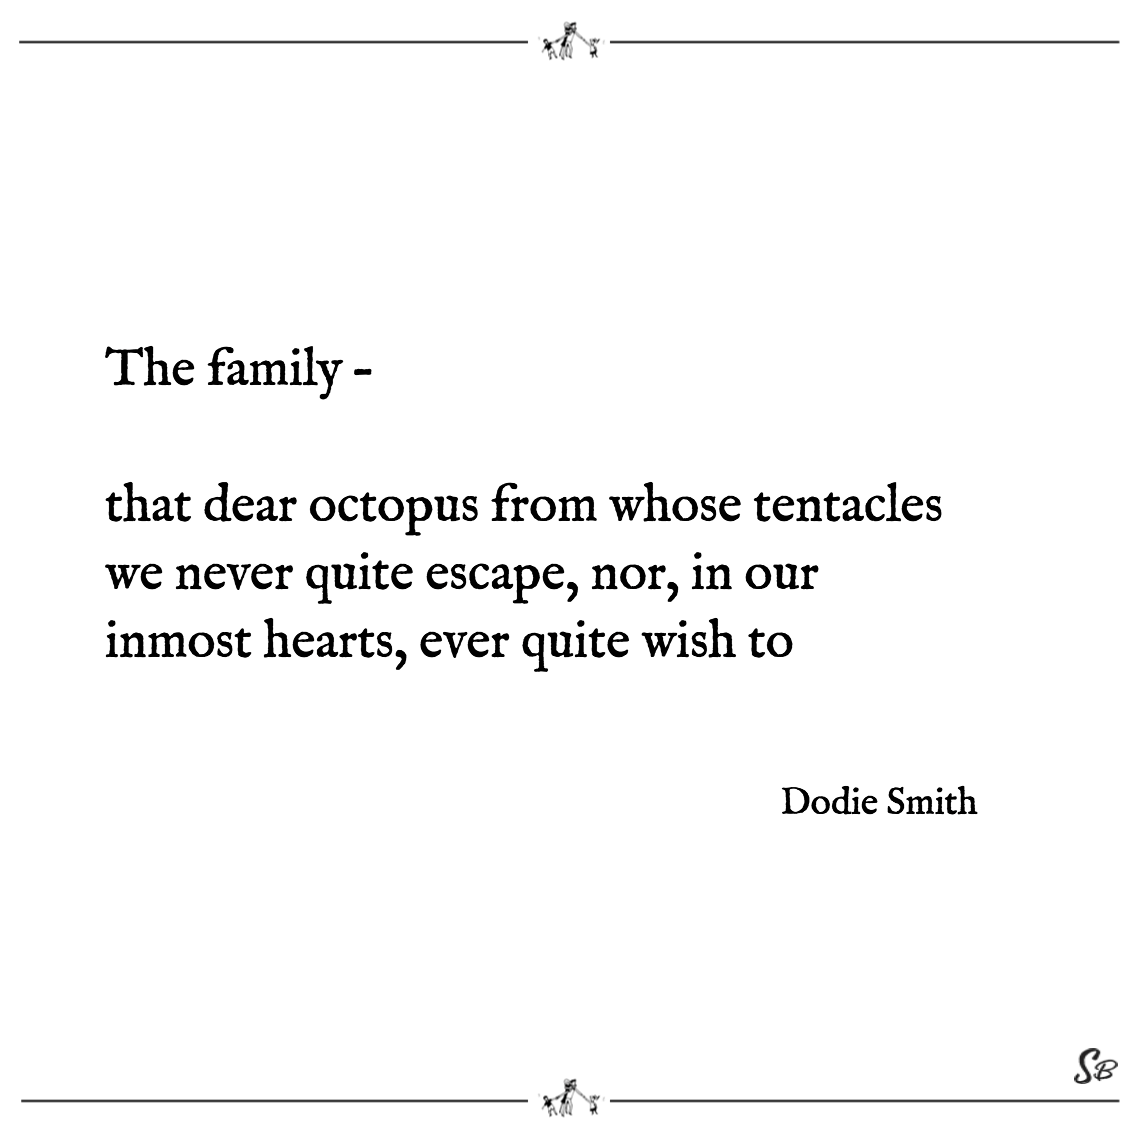 The family – that dear octopus from whose tentacles we never quite escape, nor, in our inmost hearts, ever quite wish to dodie smith